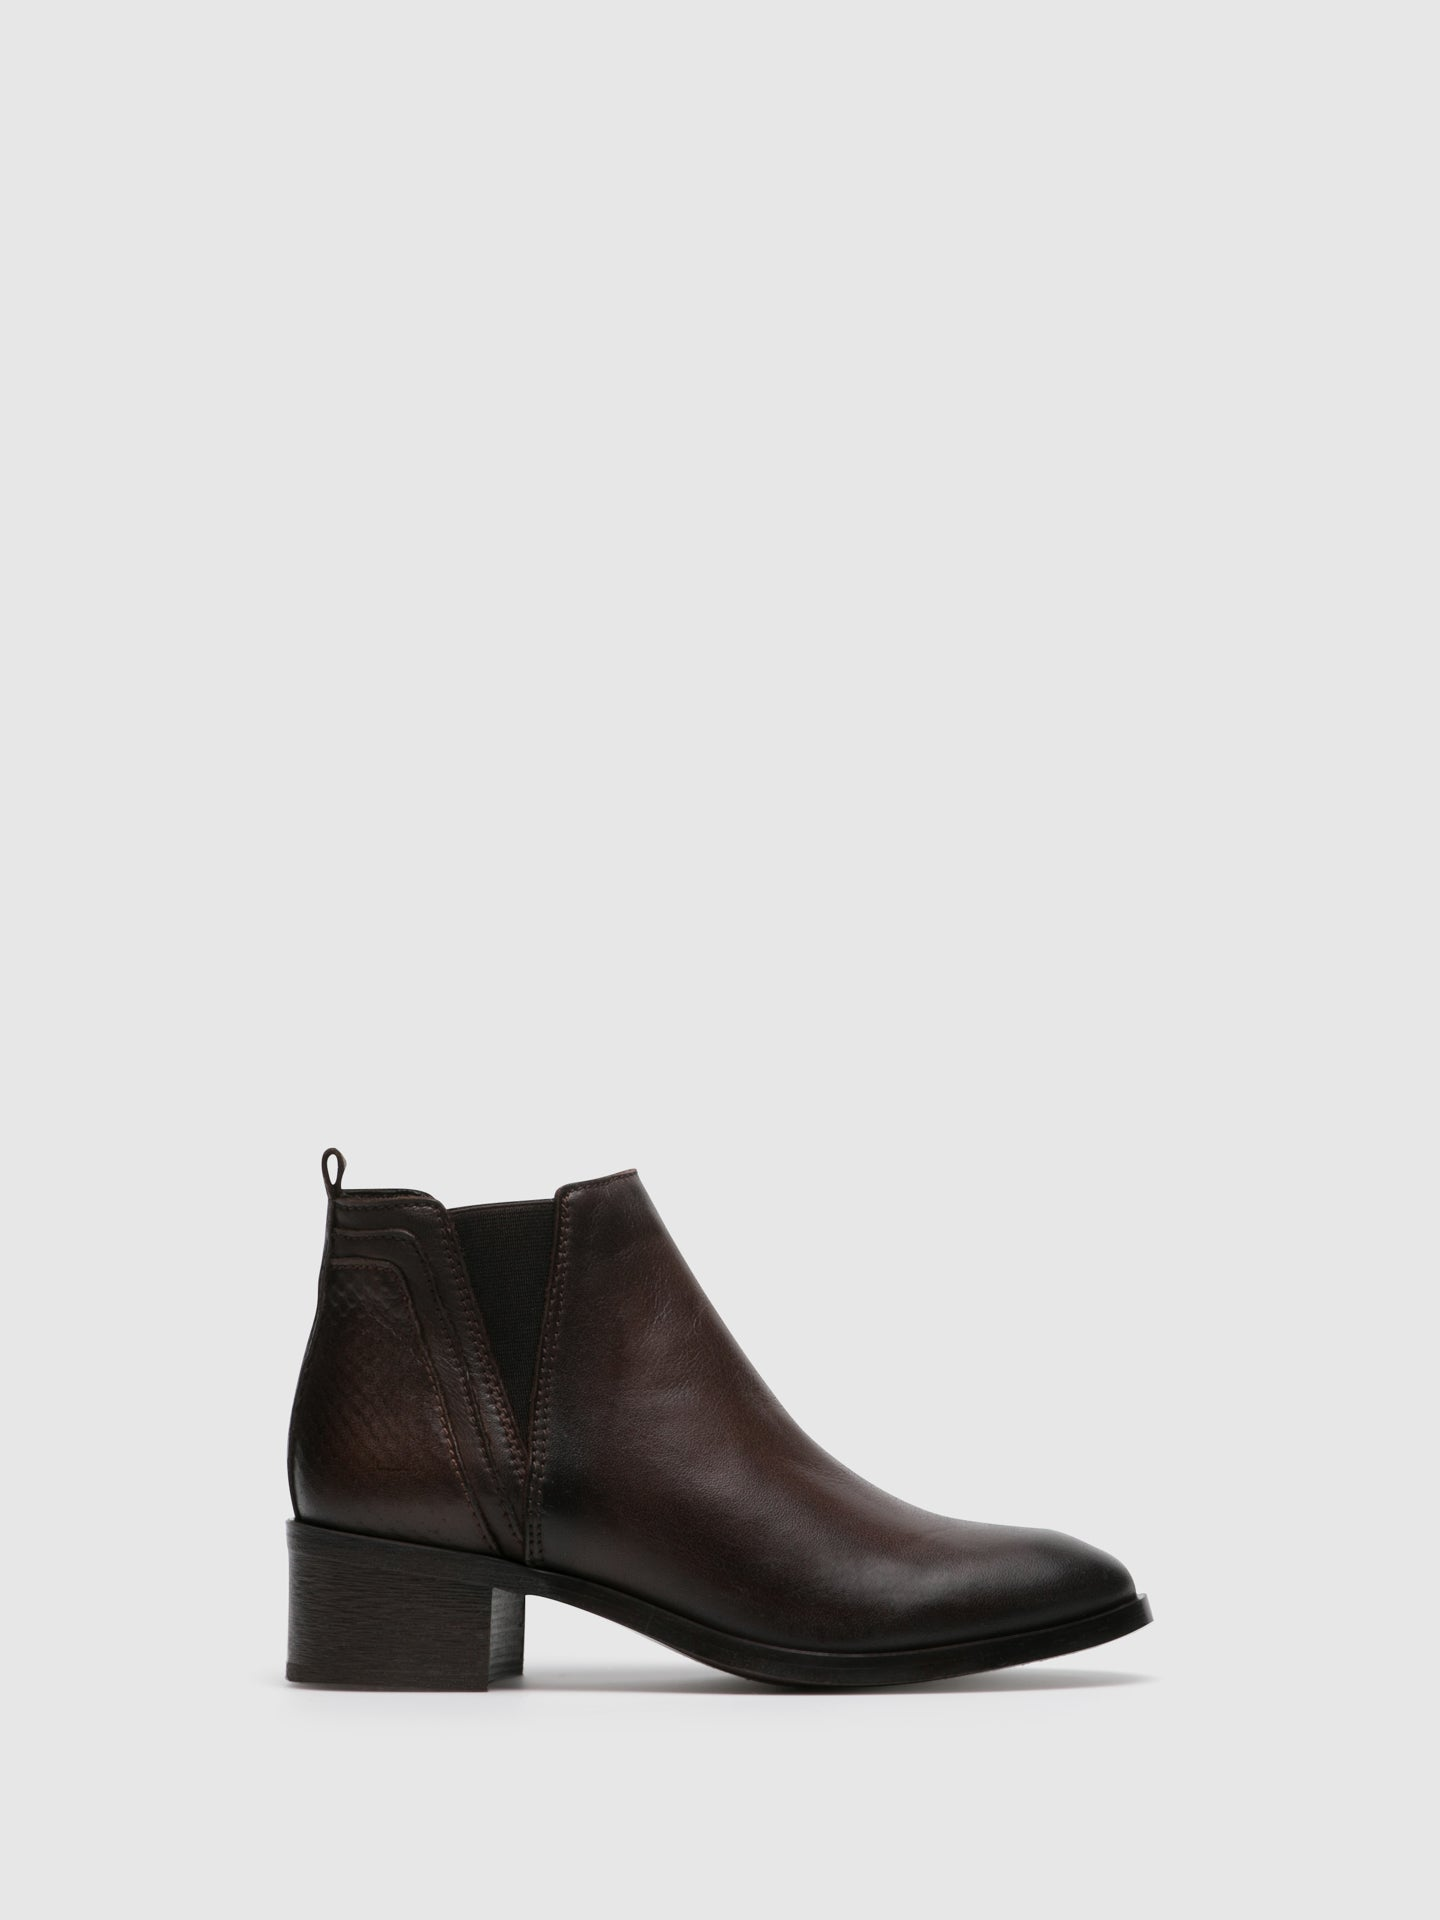 Foreva Brown Leather Elasticated Ankle Boots